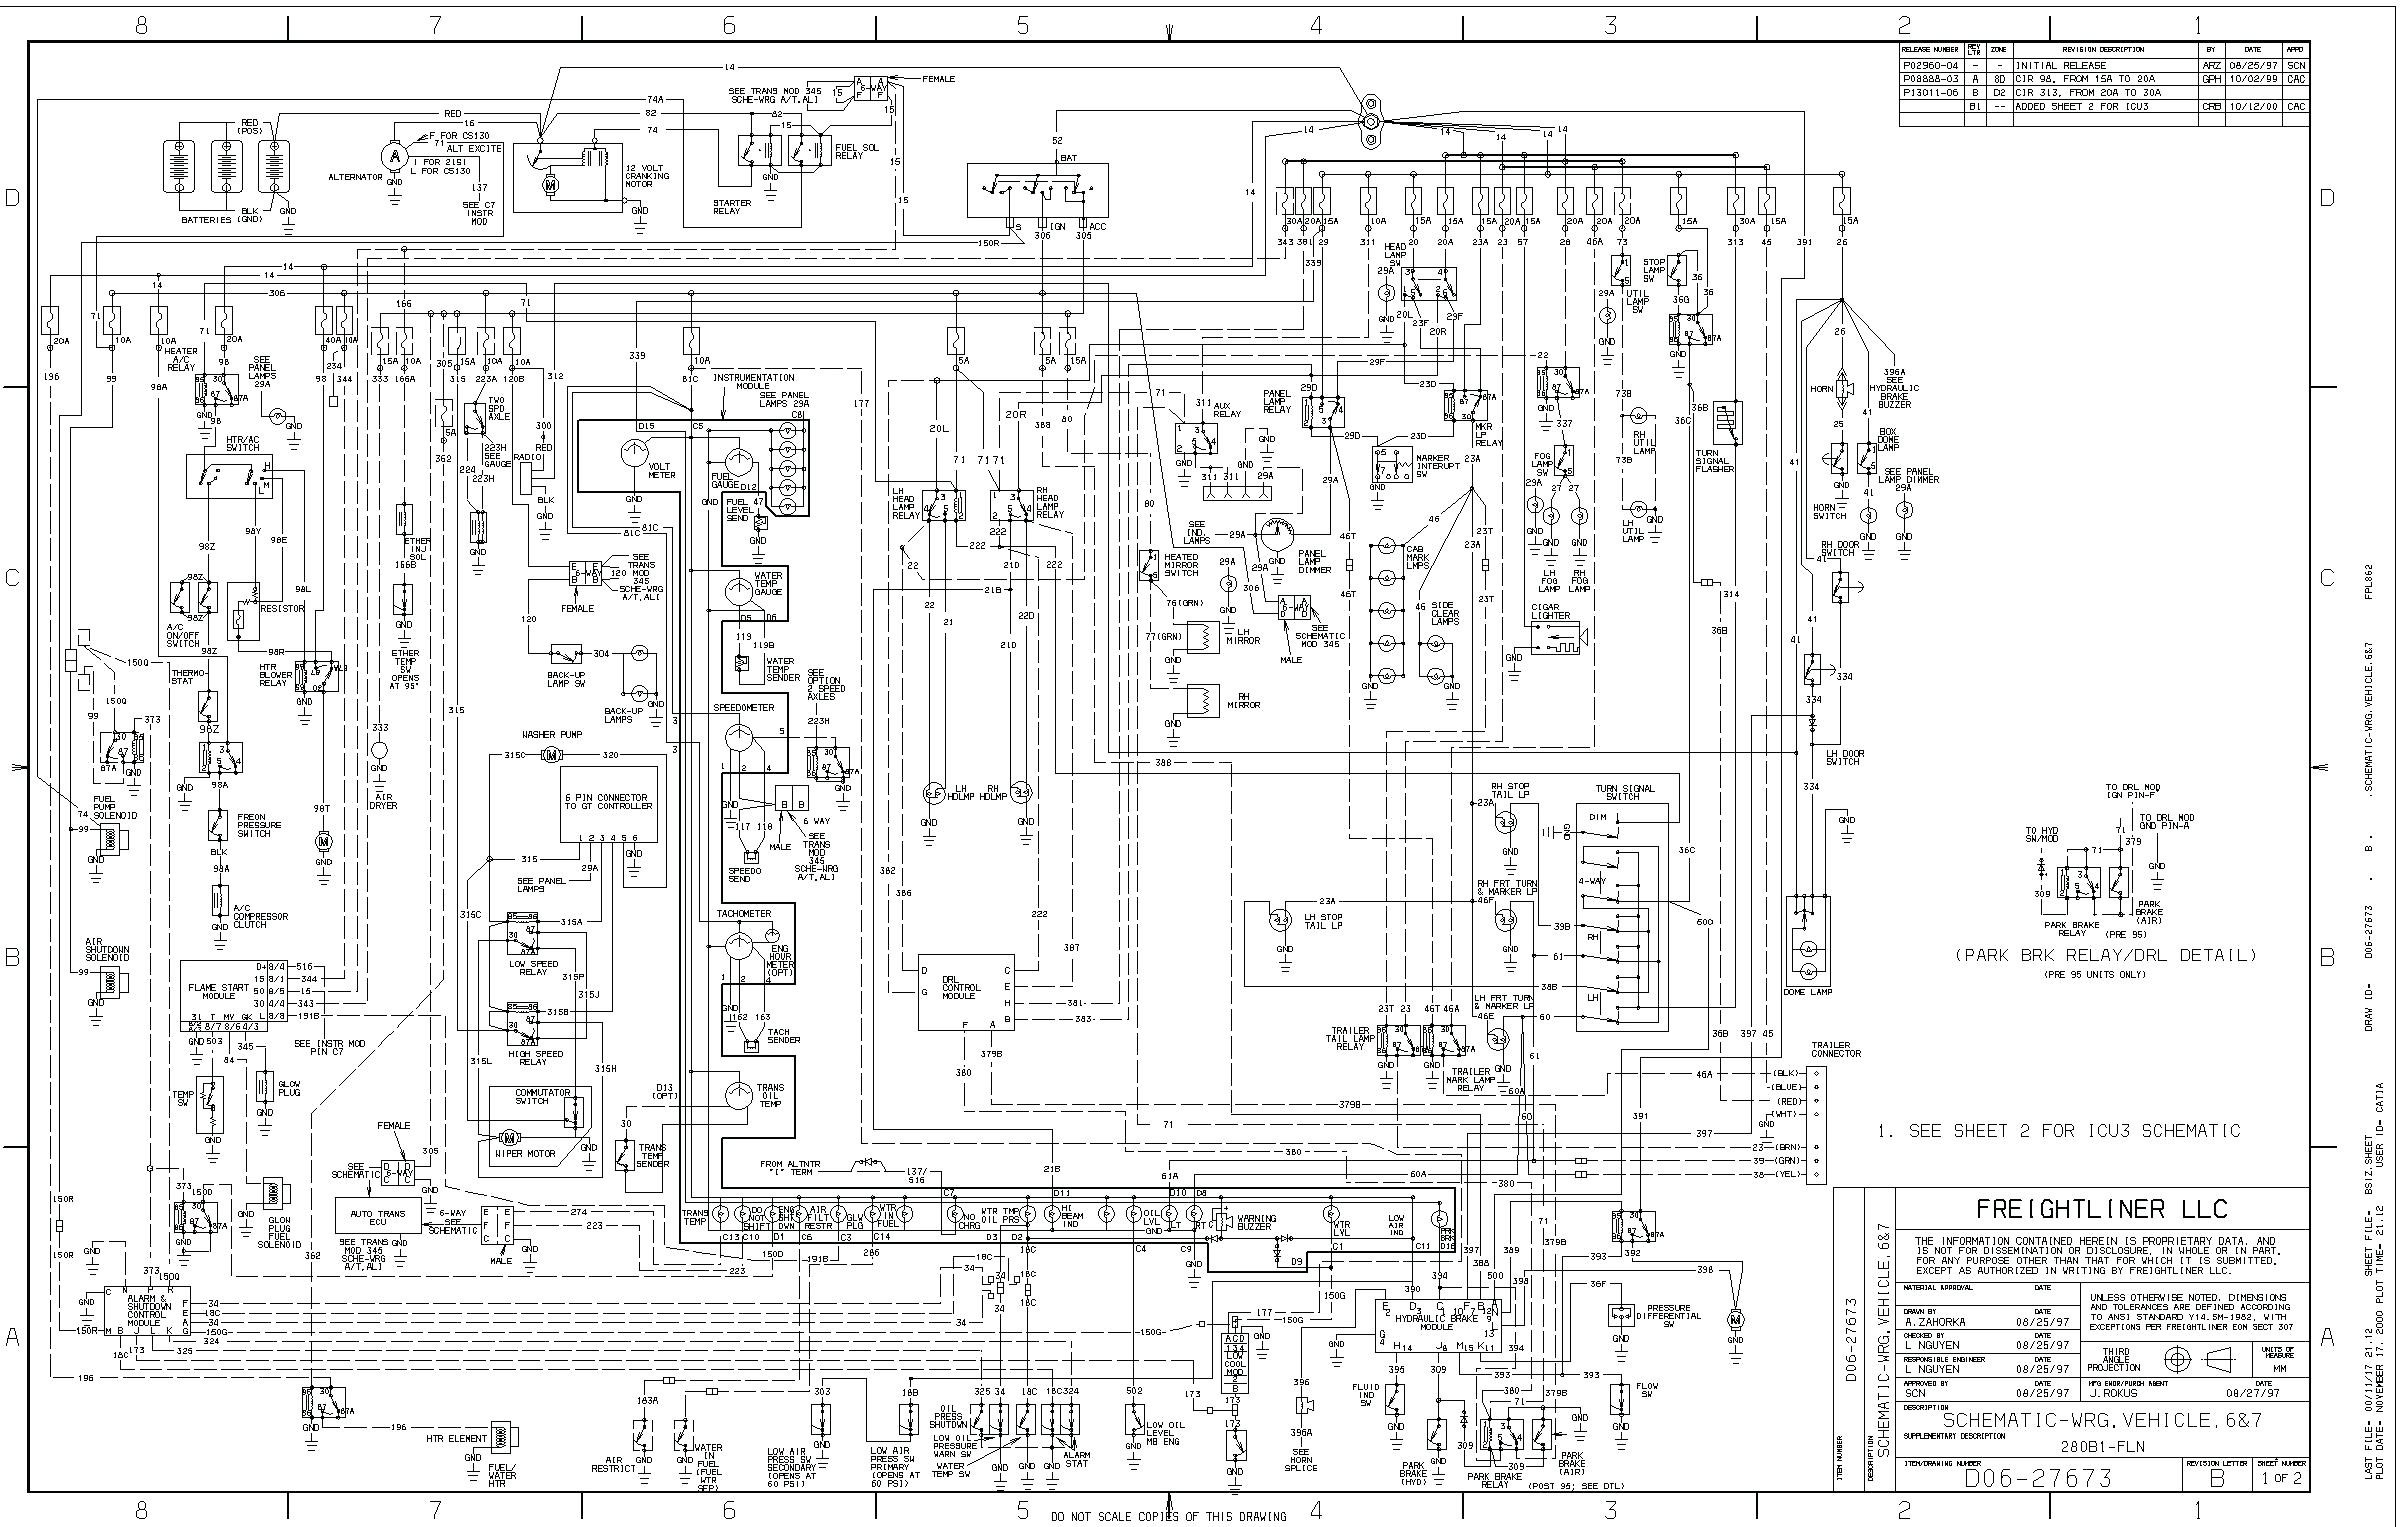 Wiring Diagram For 2000 Toyota Camry Ipsum And Schematics Engine Get Free Image About Rh Dronomap Co 2002